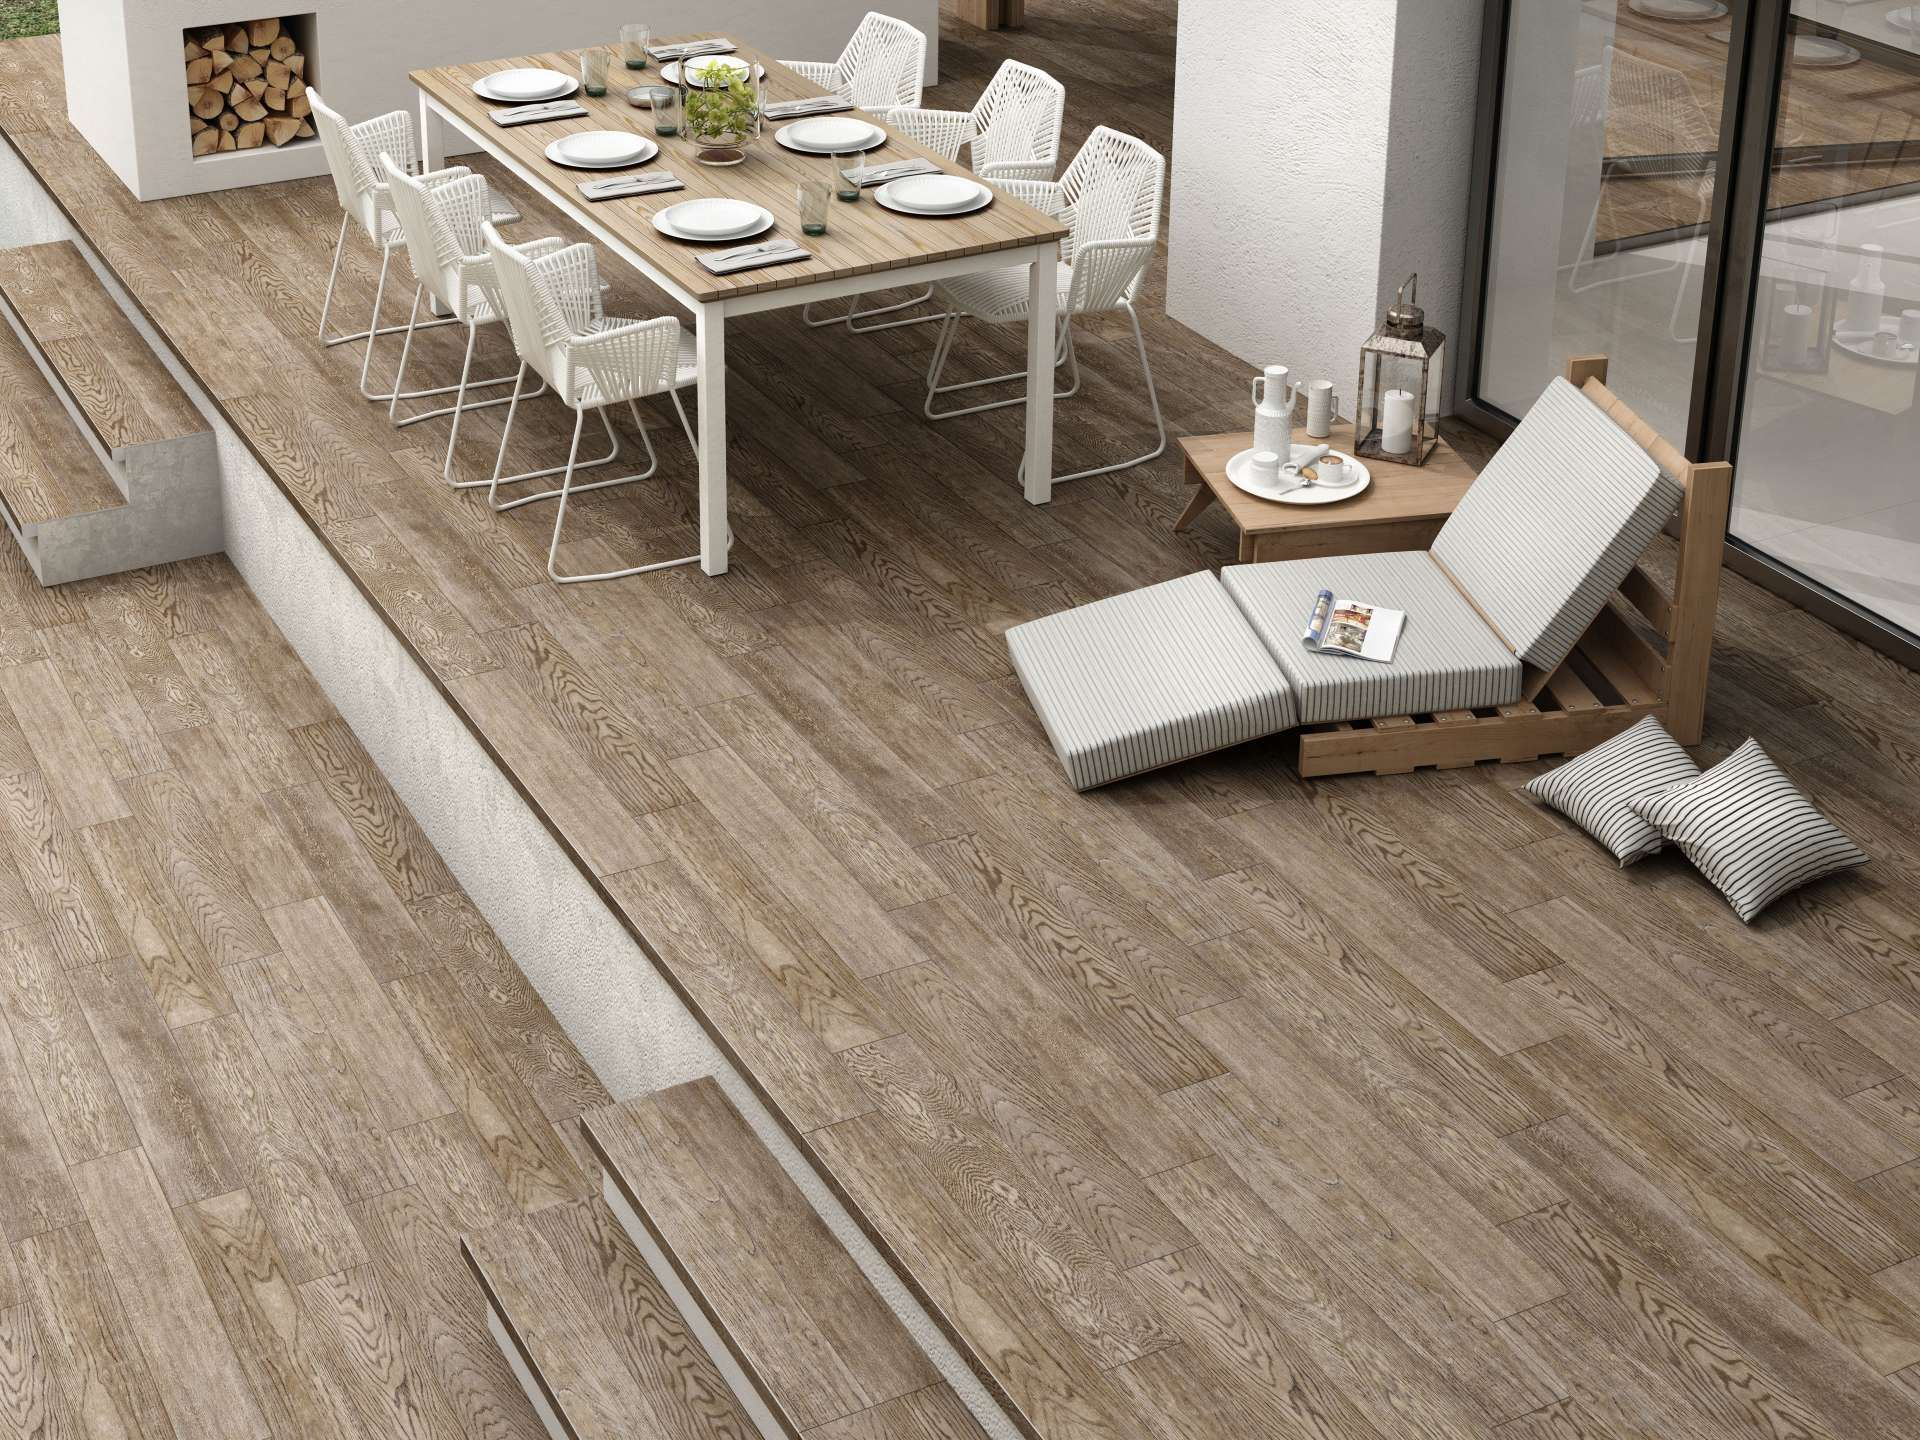 Wood Effect Non Slip Floor Tile